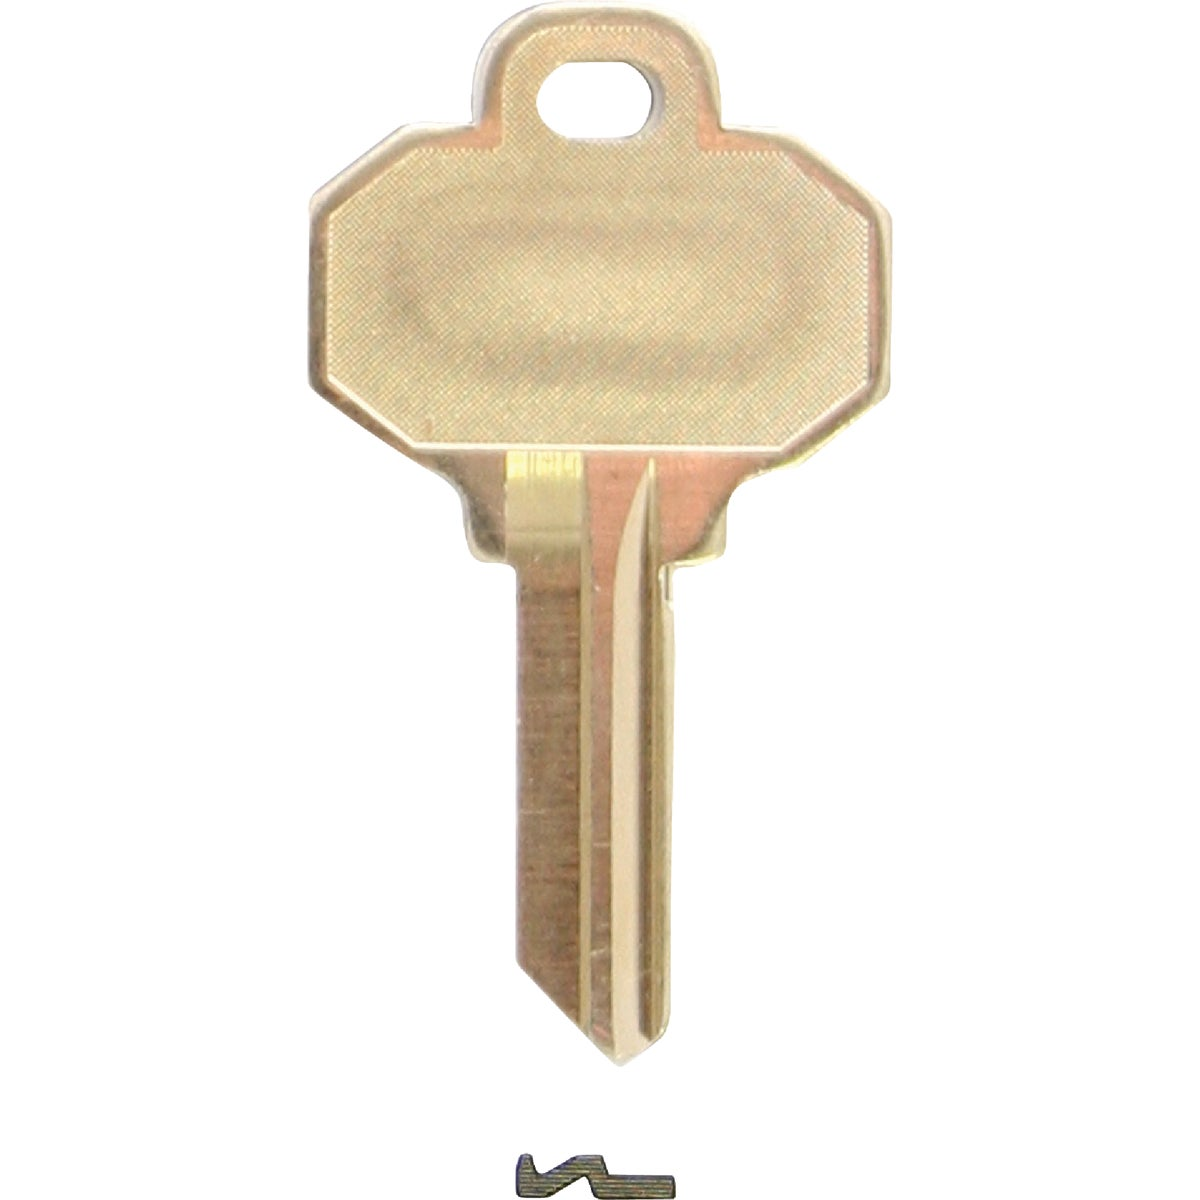 BW2 BALDWIN HOUSE KEY - 1510 by Ilco Corp